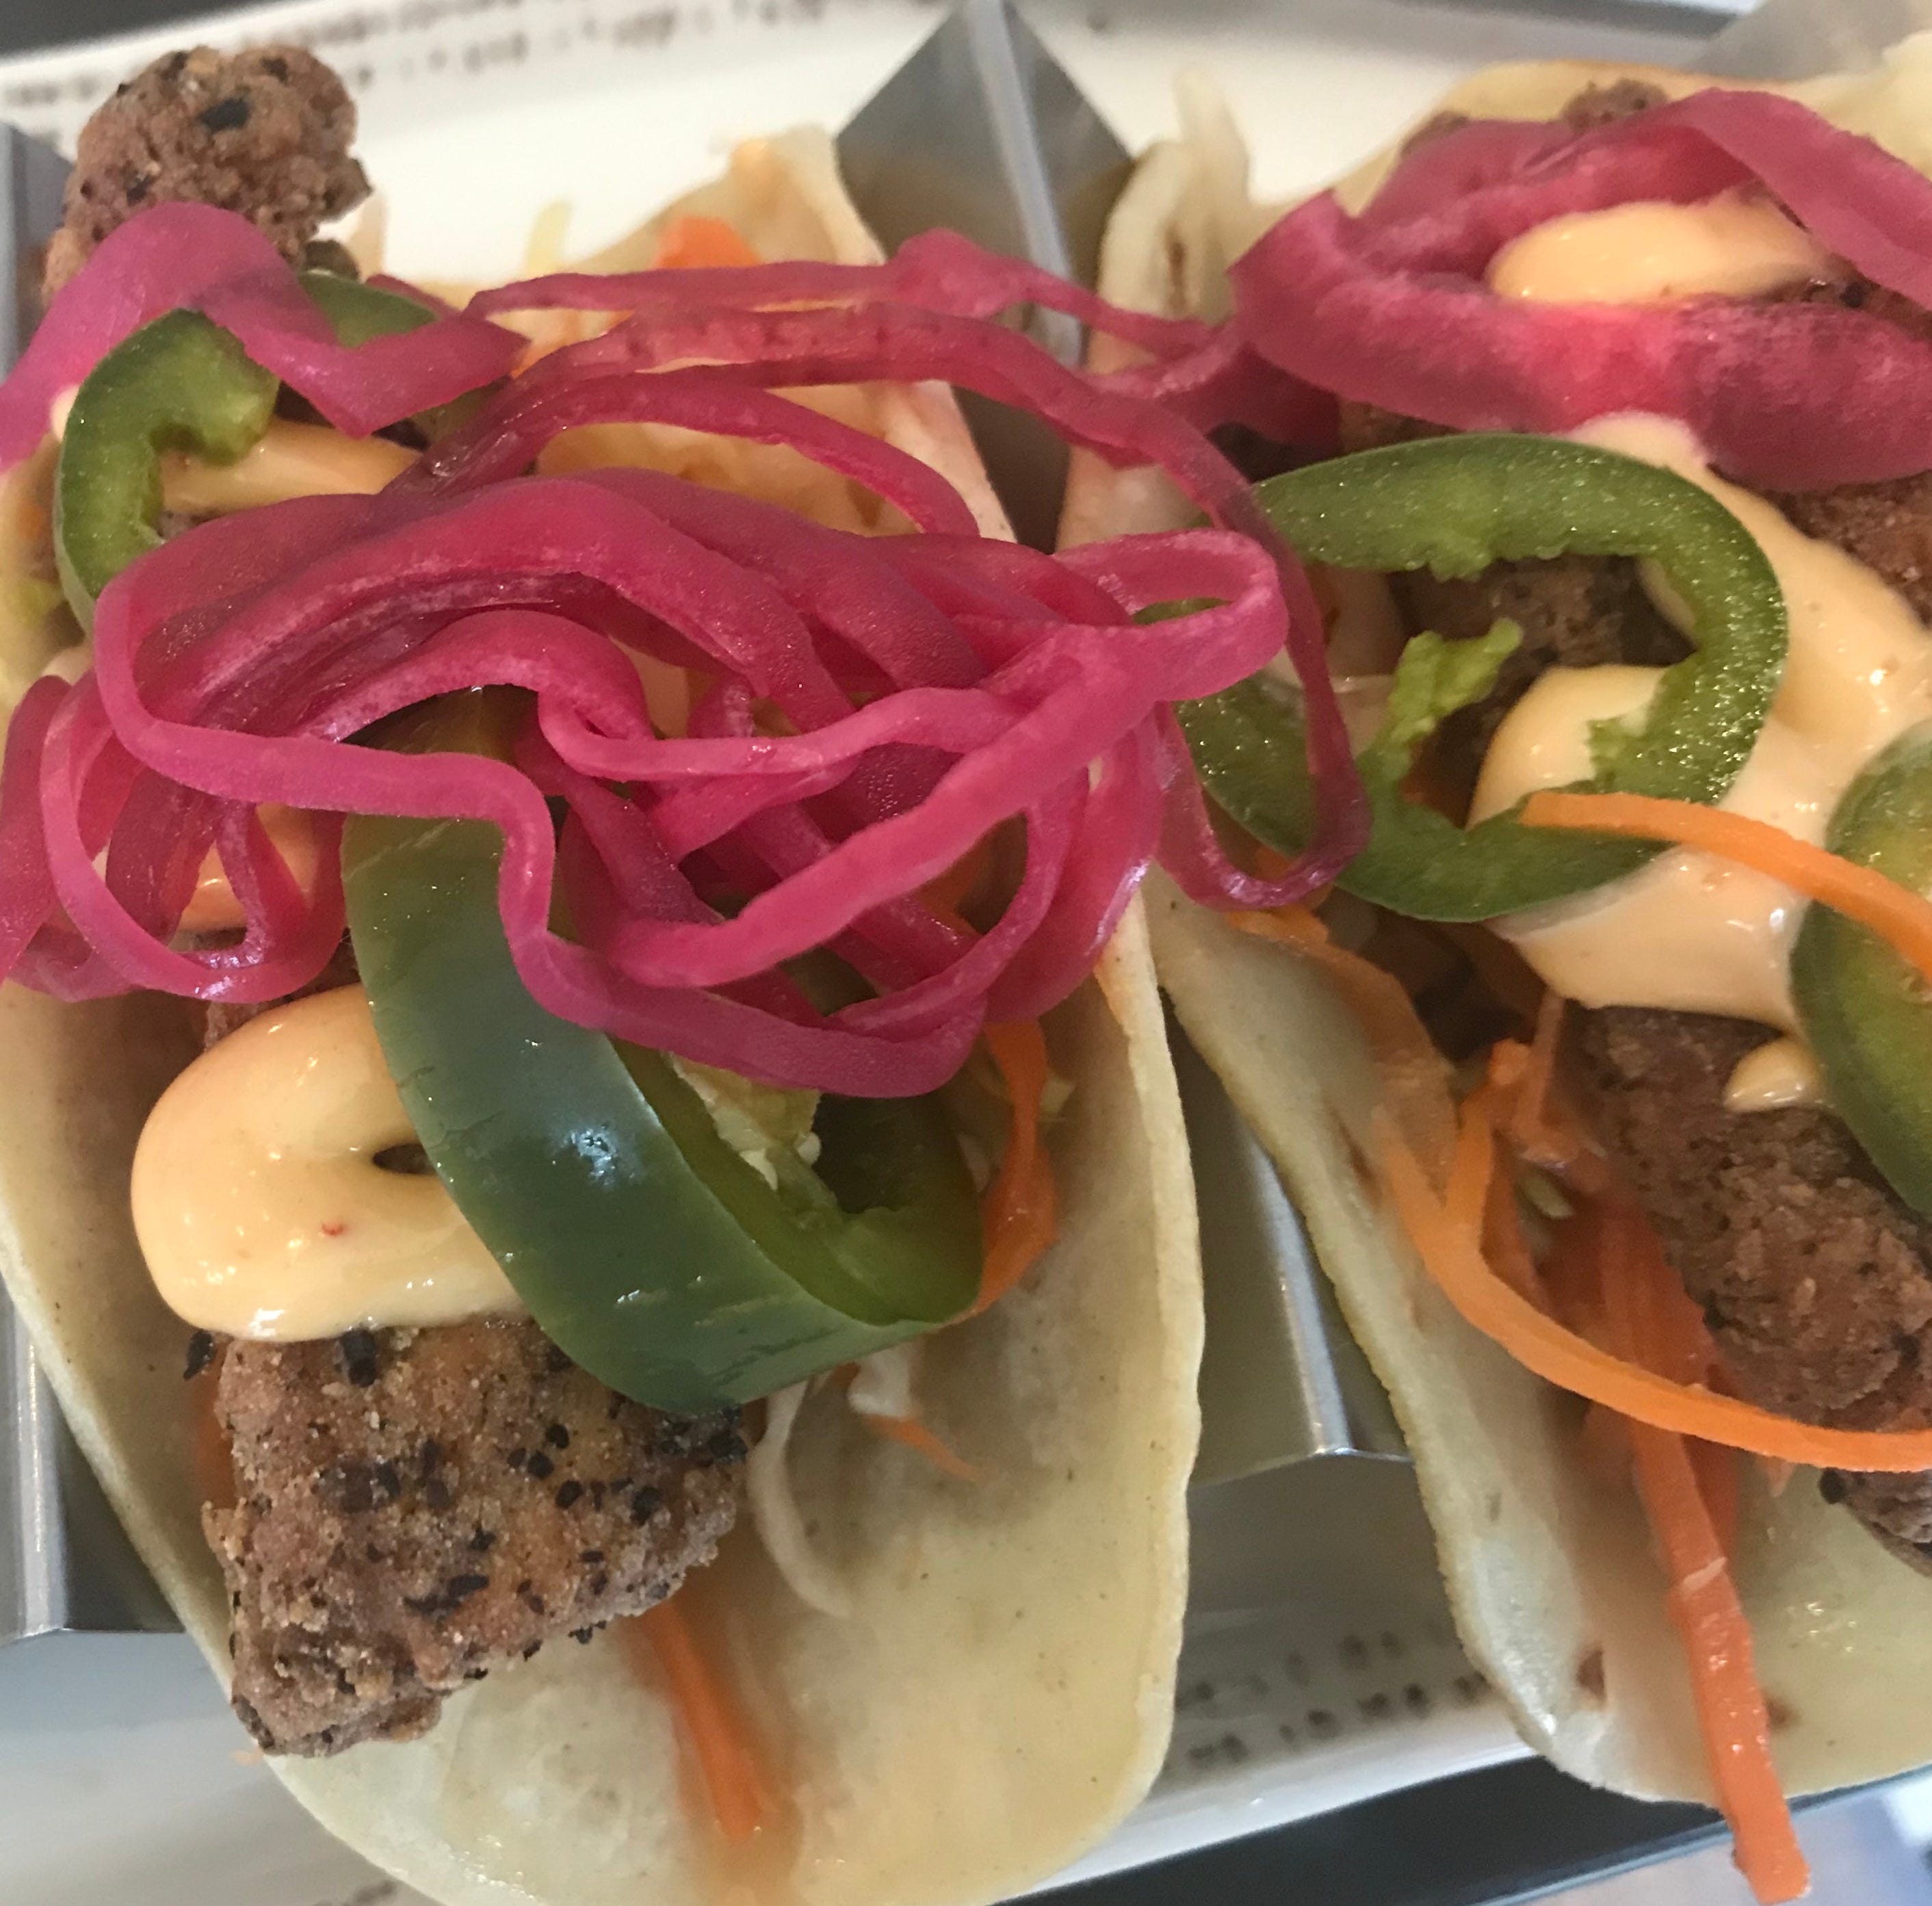 New El Camino Mexican Kitchen has flavorful takes on old favorites